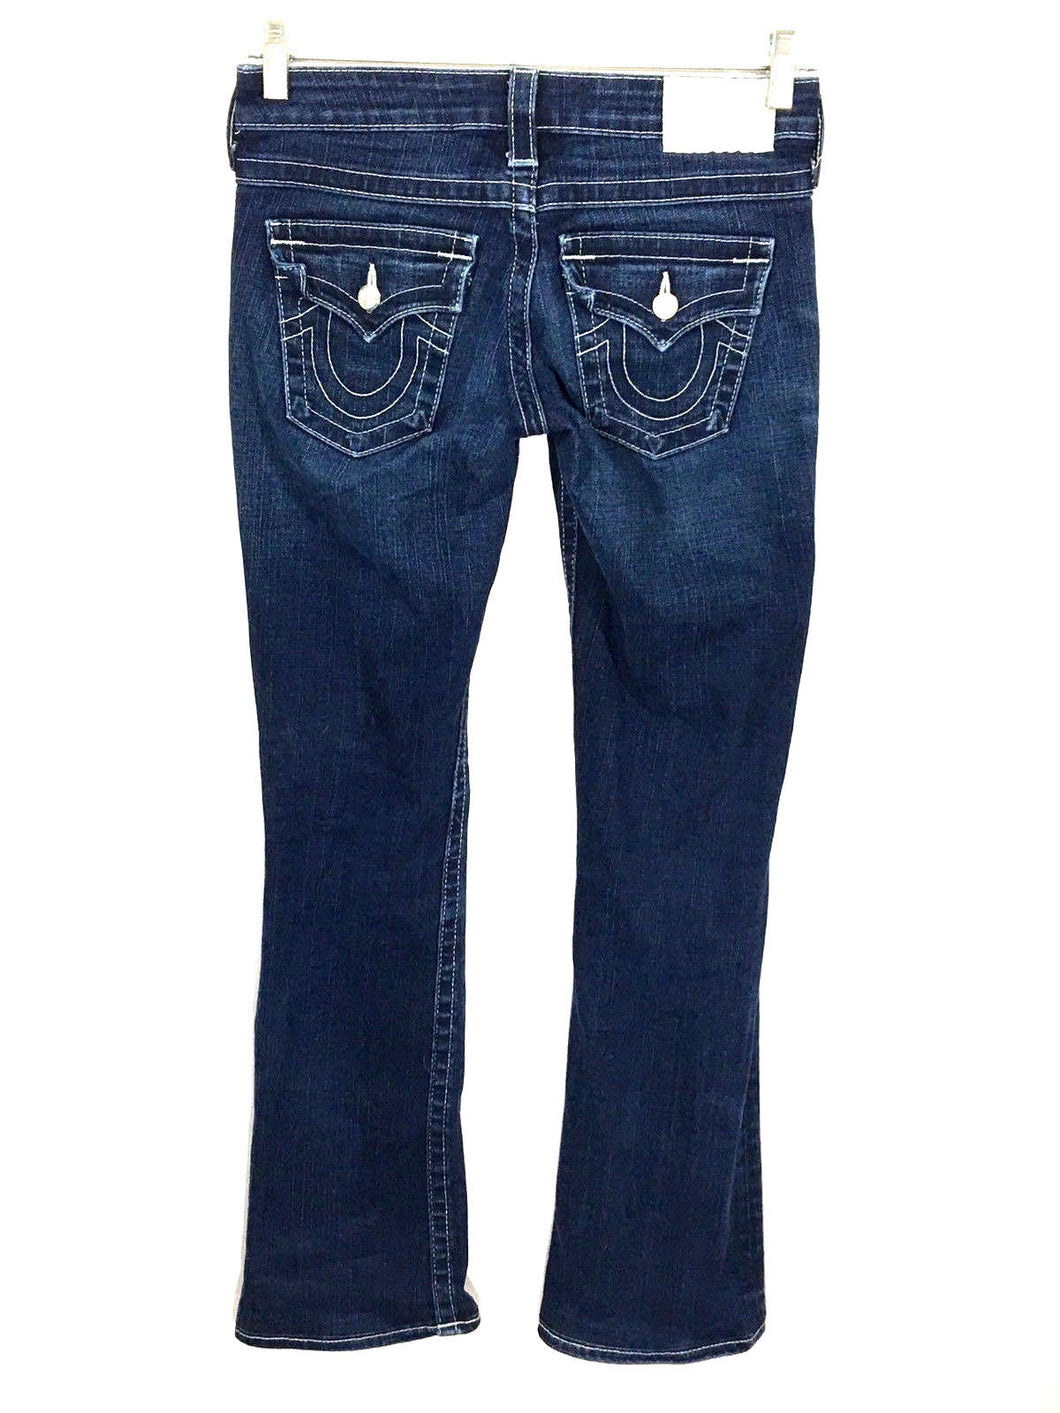 True Religion Jeans Becky Glitz and Glam Pony Express Boot Cut Women's 26 - Preowned - FunkyCrap Boutique